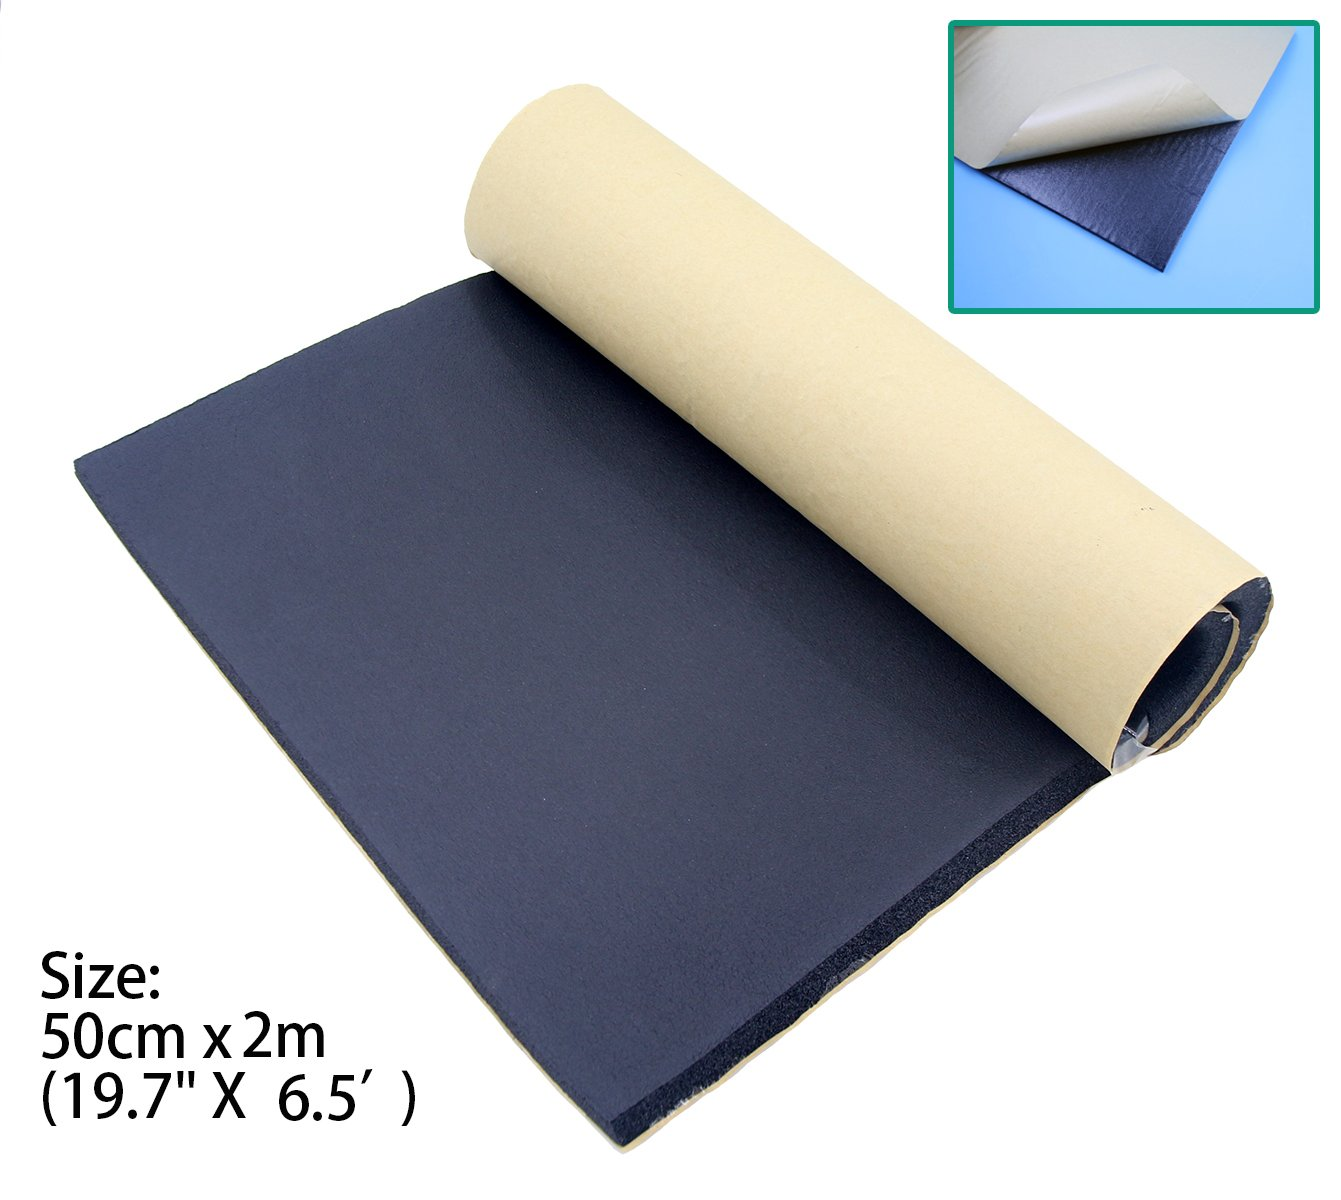 SUNDELY® 5mm Sound Proofing Deadening Vehicle Insulation Closed Cell Foam Sheet with Adhesive Backing 50cm x 2m (19.7' X 6.5')